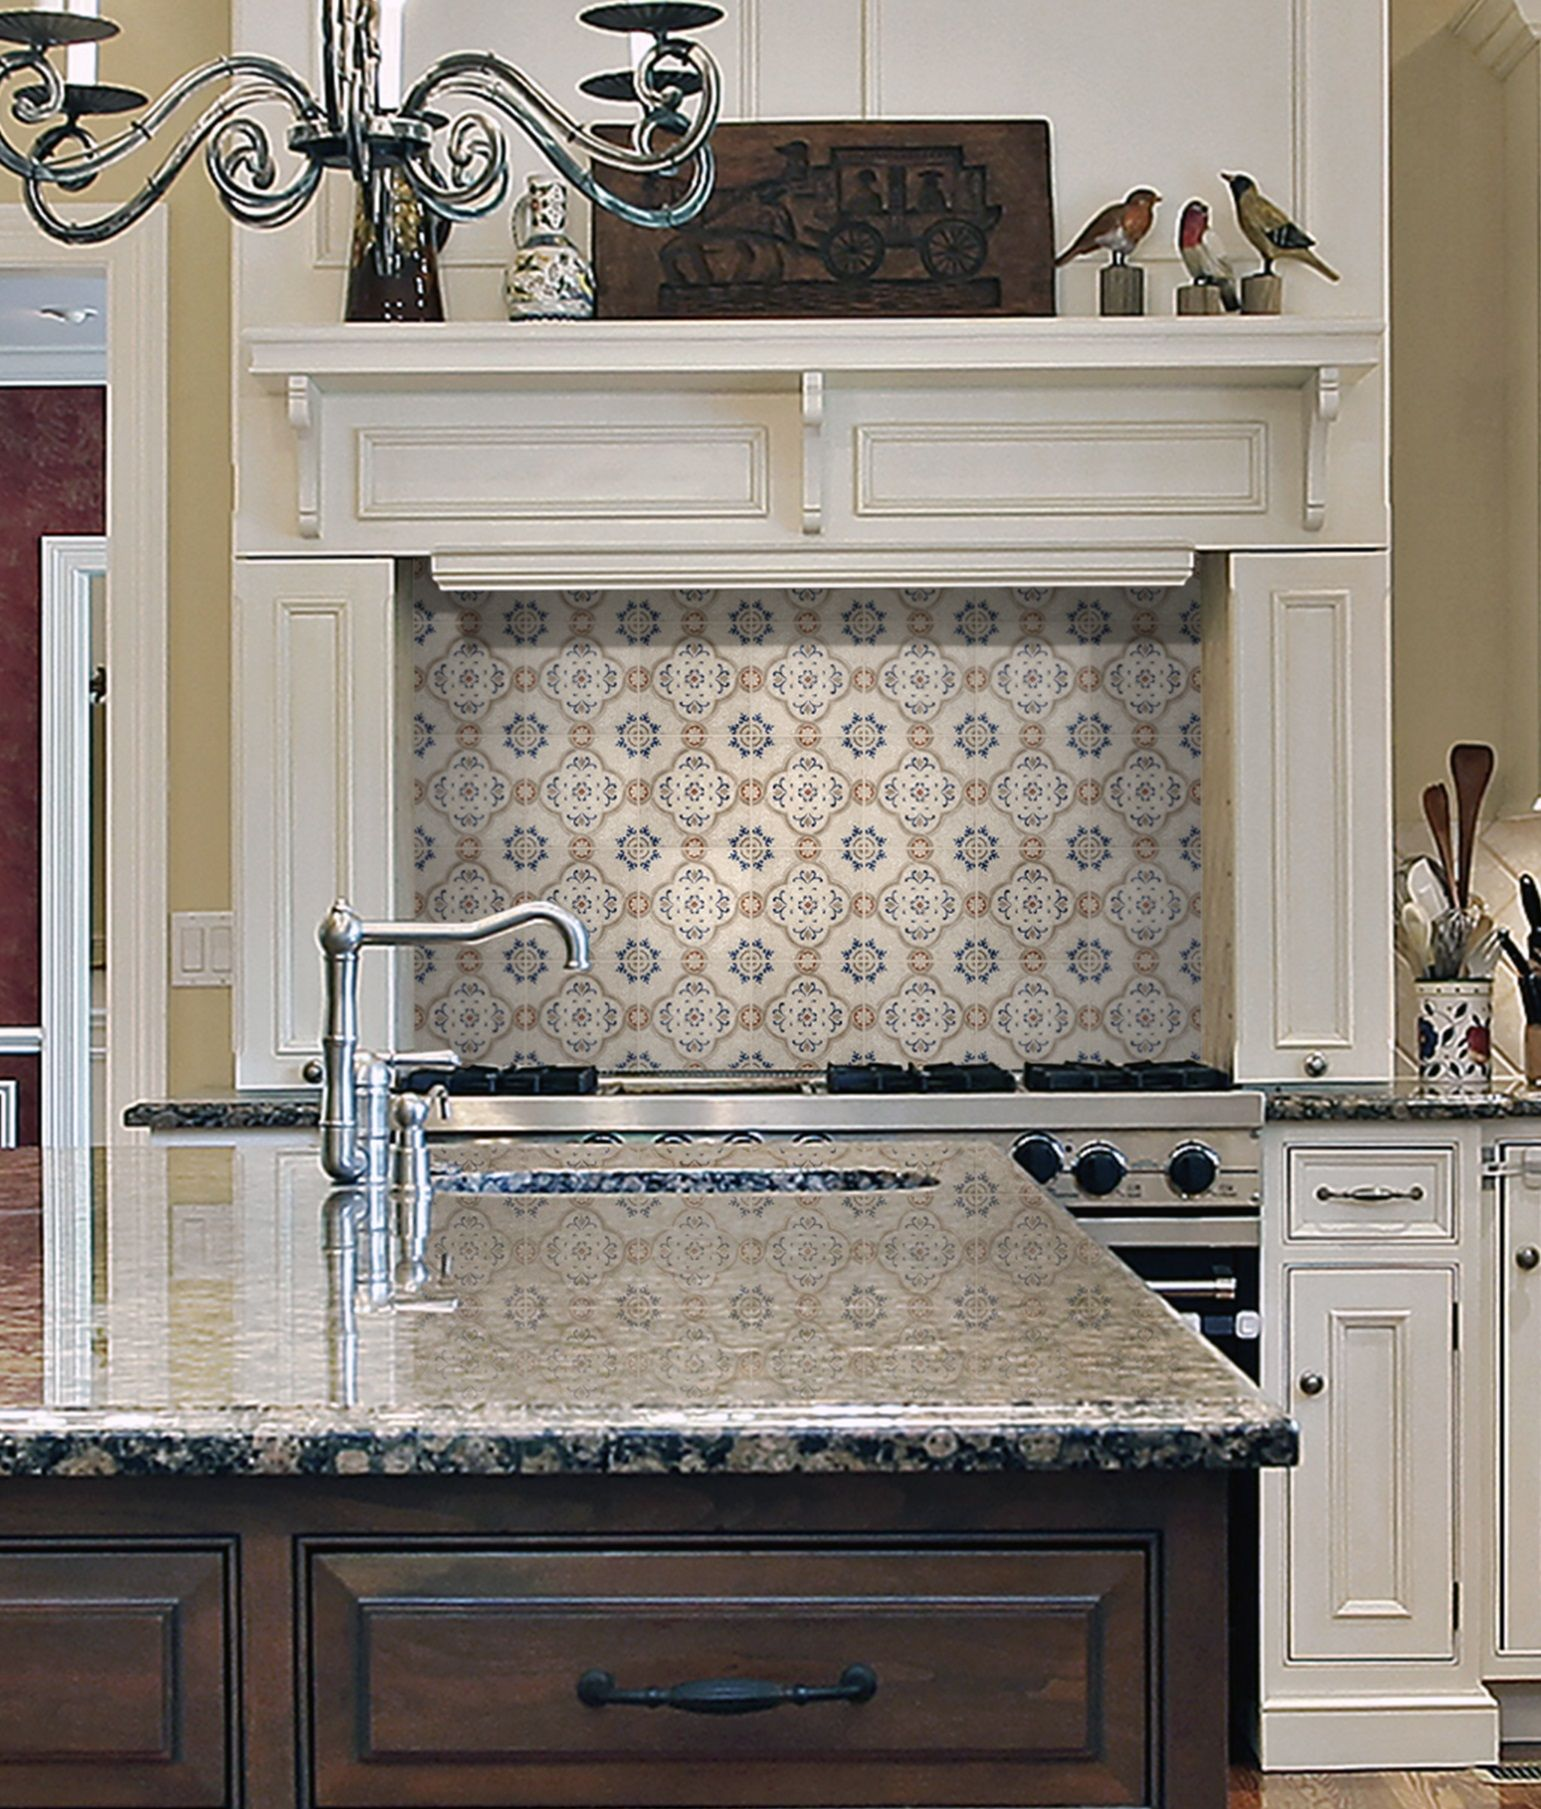 Decorative Tile Backsplash Rustic Tile Designs And Patterns For Kitchen Ready To Ship In